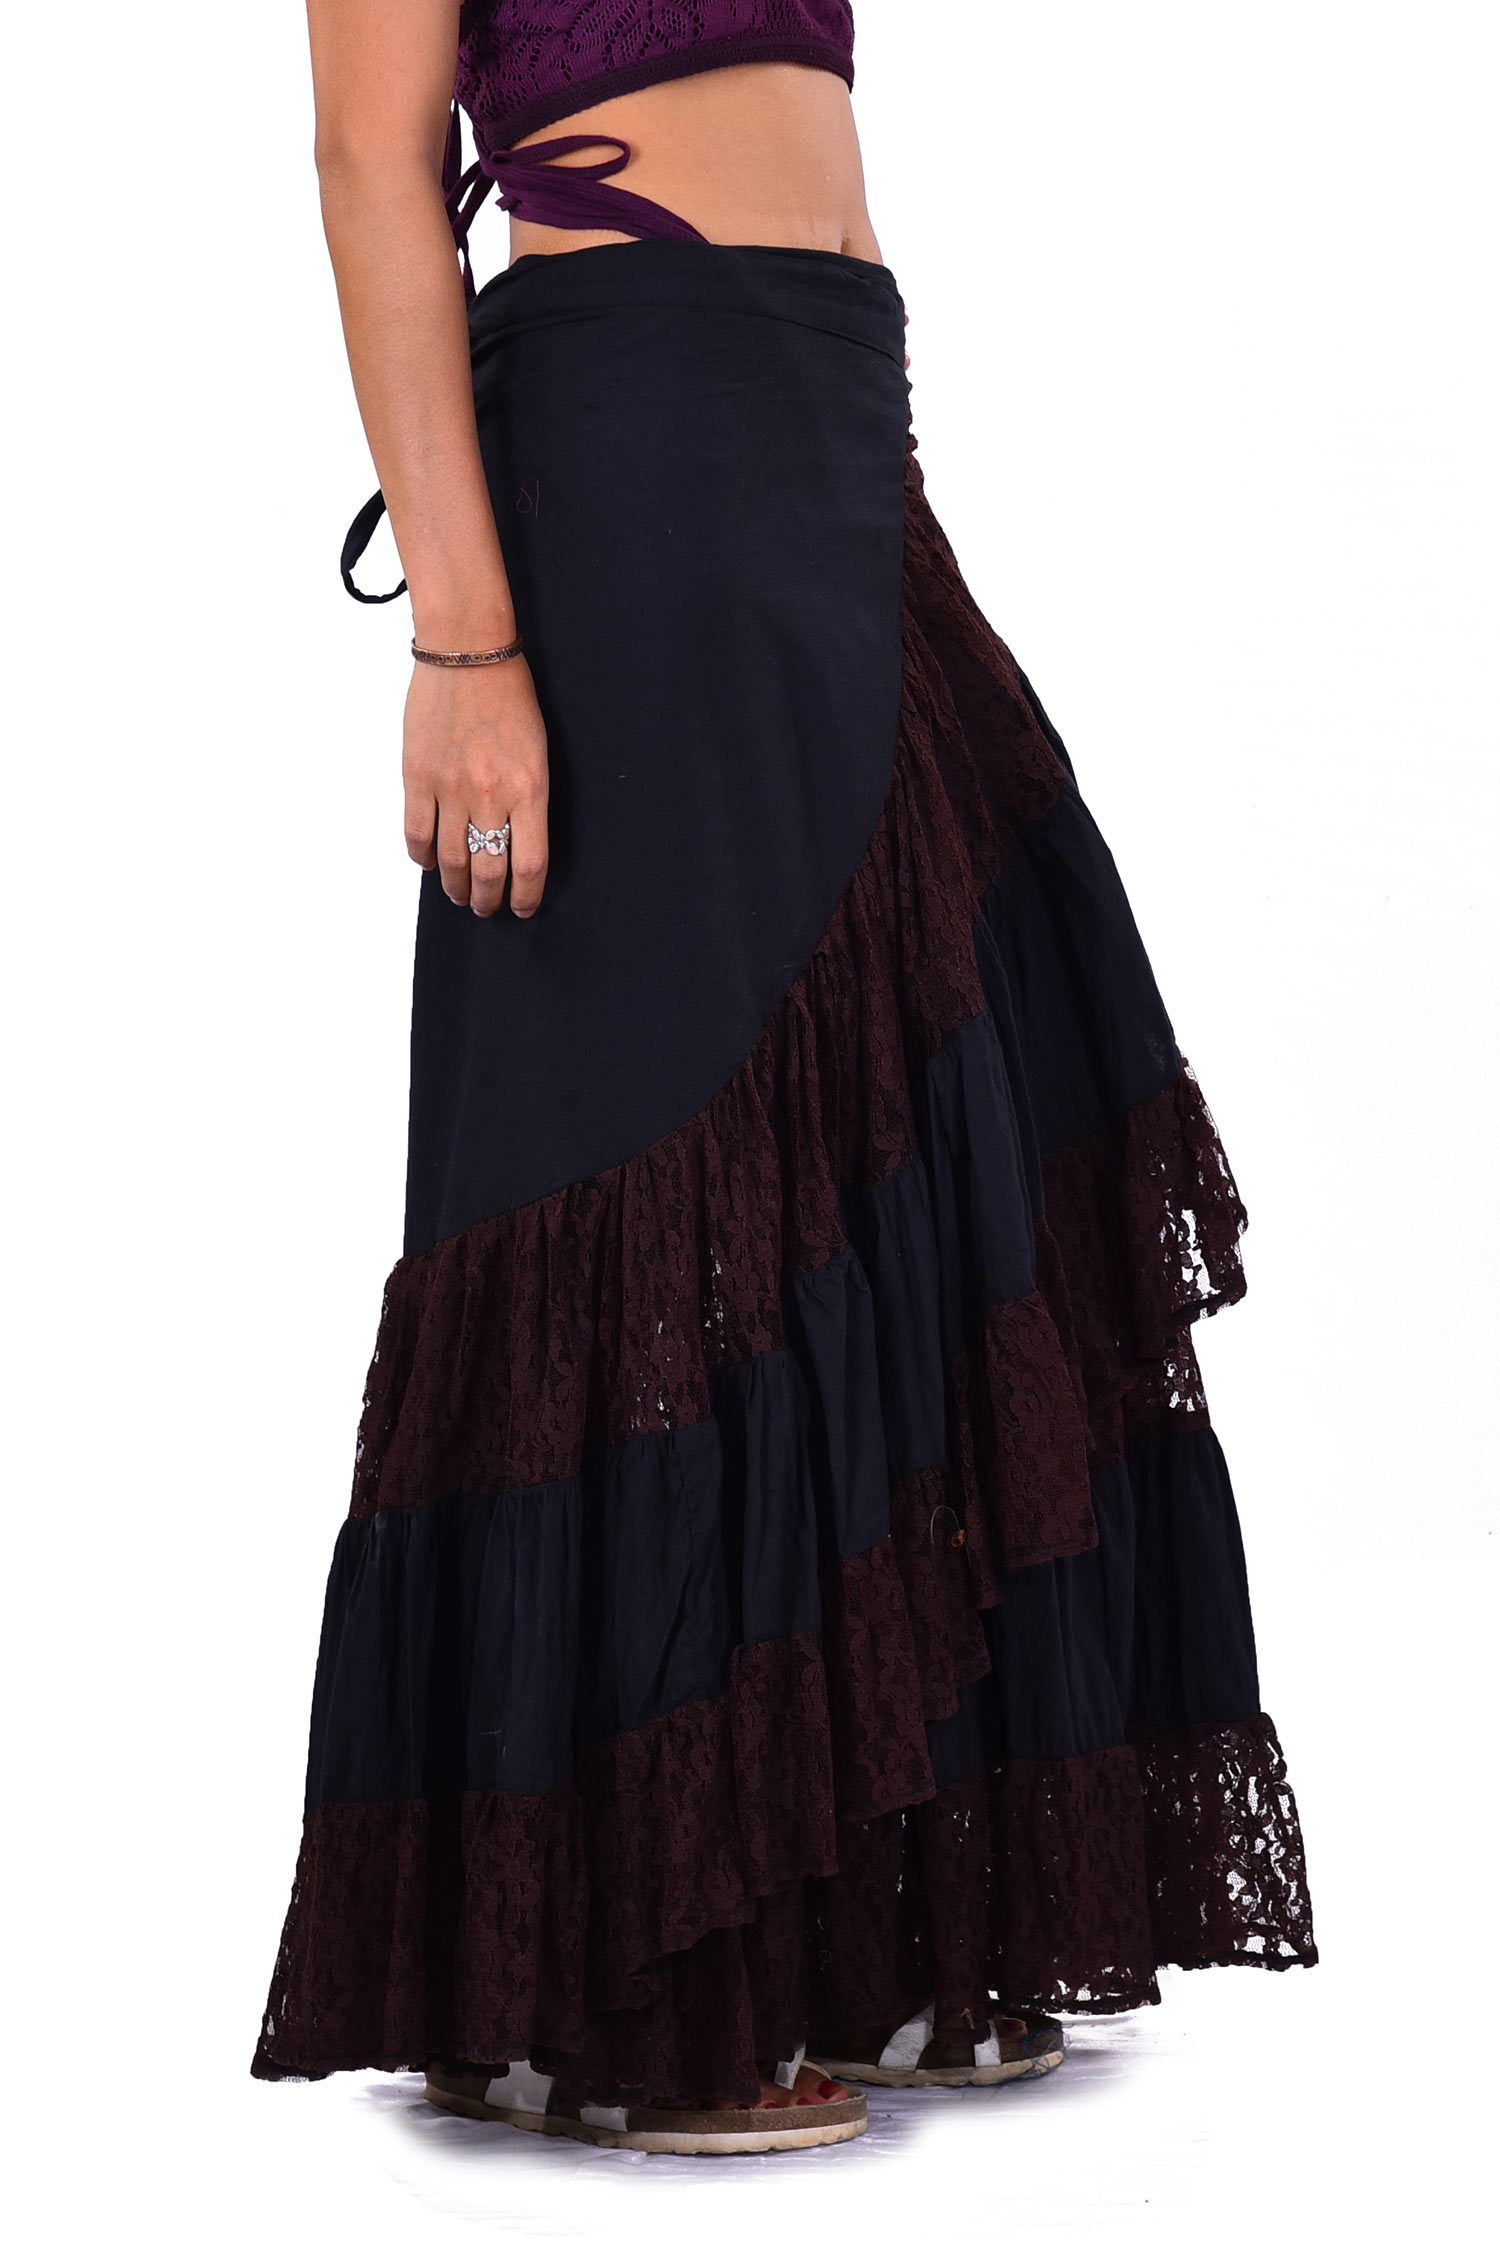 Find great deals on eBay for long gypsy skirt. Shop with confidence.